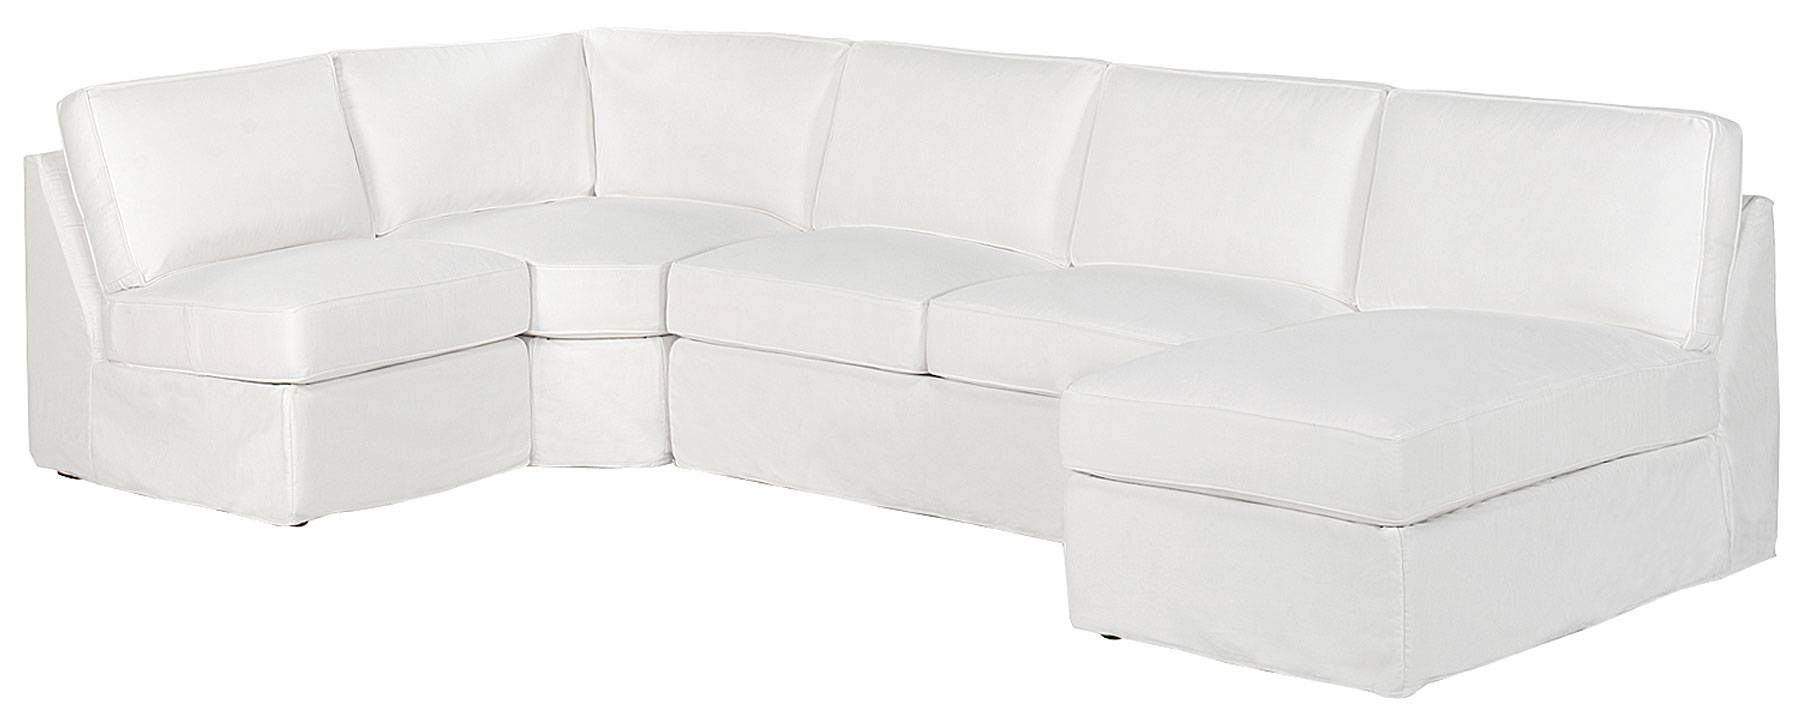 Ava Armless Sectional | Club Furniture Pertaining To Armless Sectional Sofas (View 22 of 30)